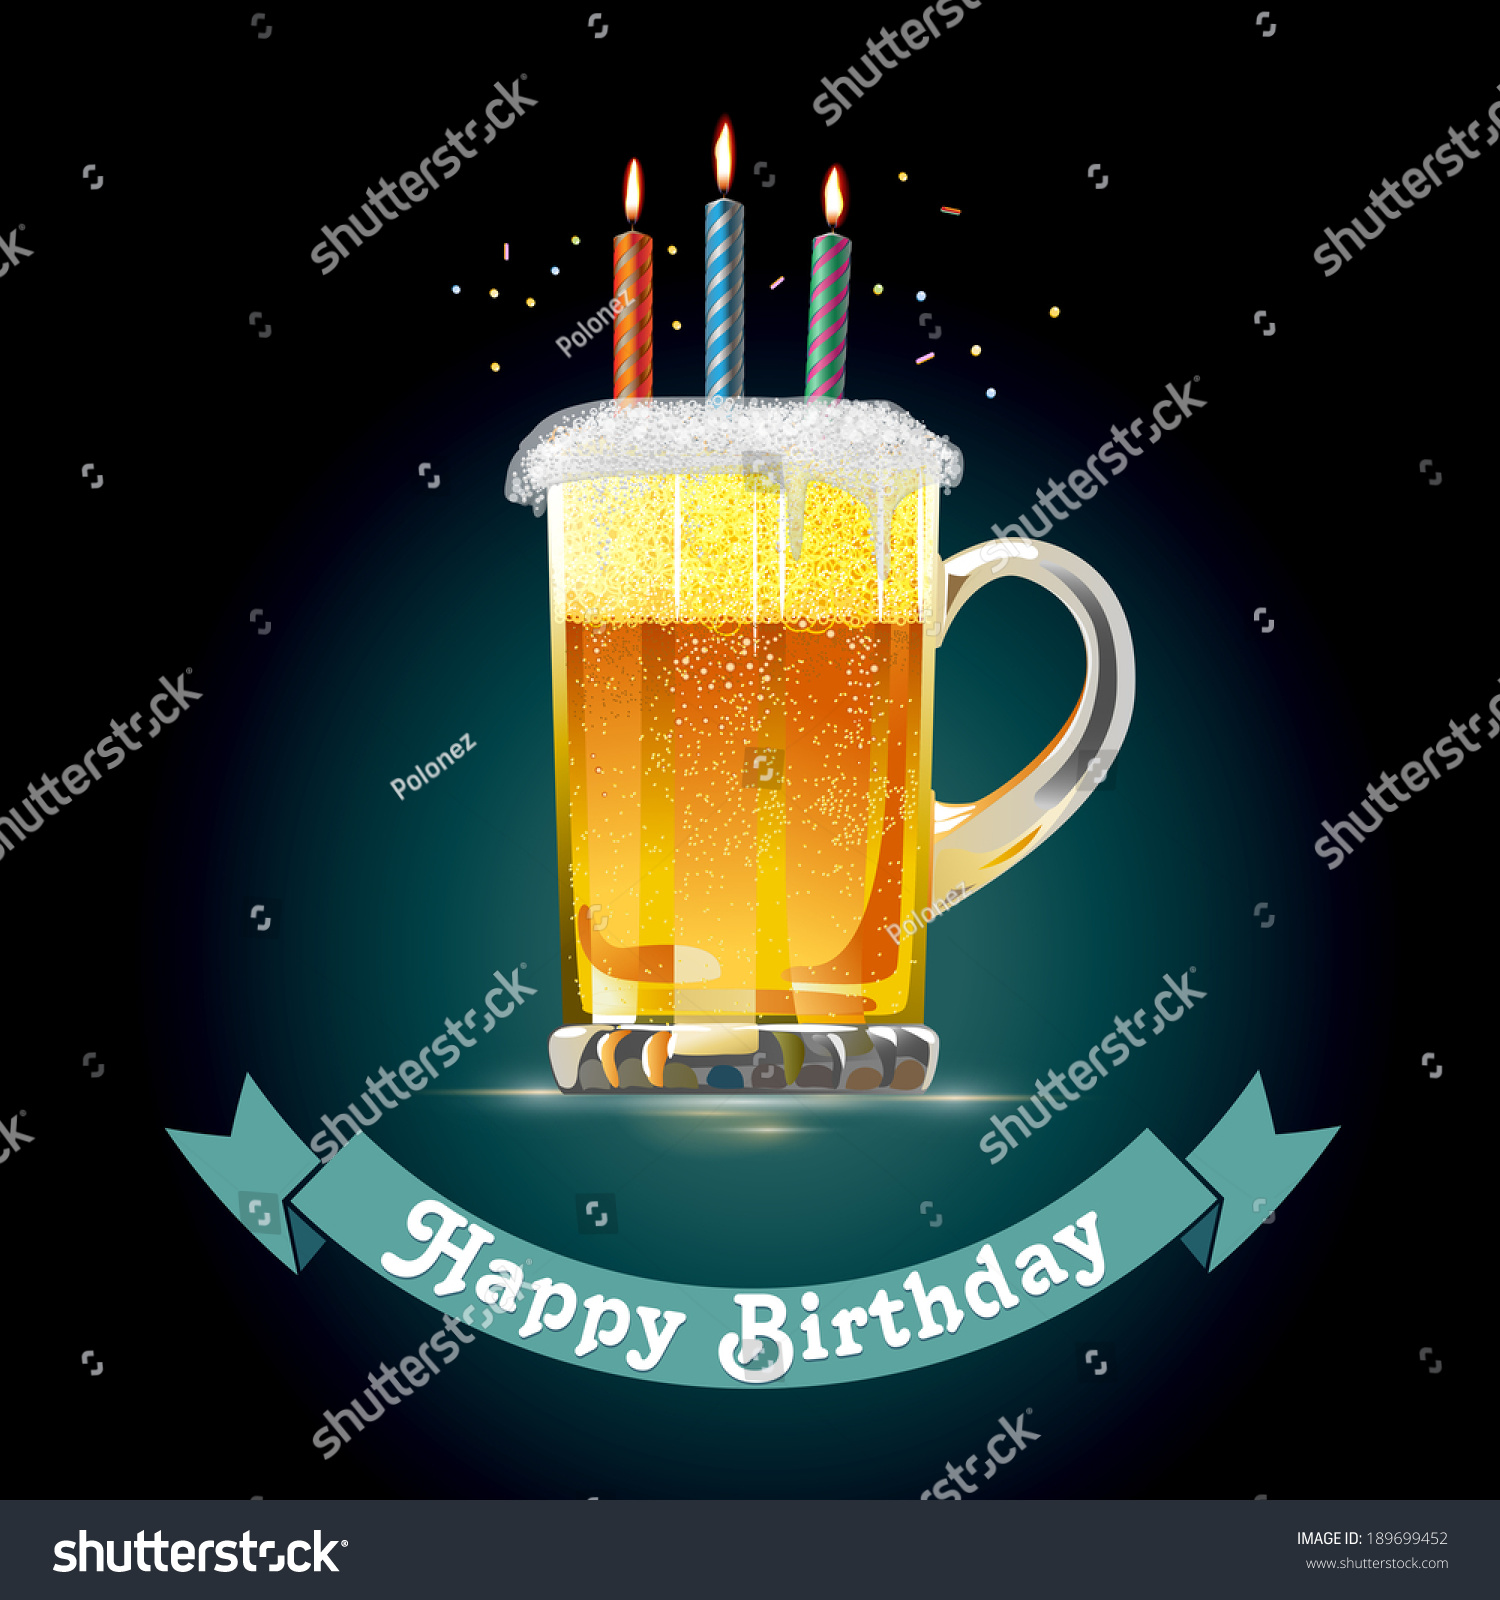 Happy birthday card person who loves stock vector royalty free happy birthday card for person who loves beer eps 10 vector illustration m4hsunfo